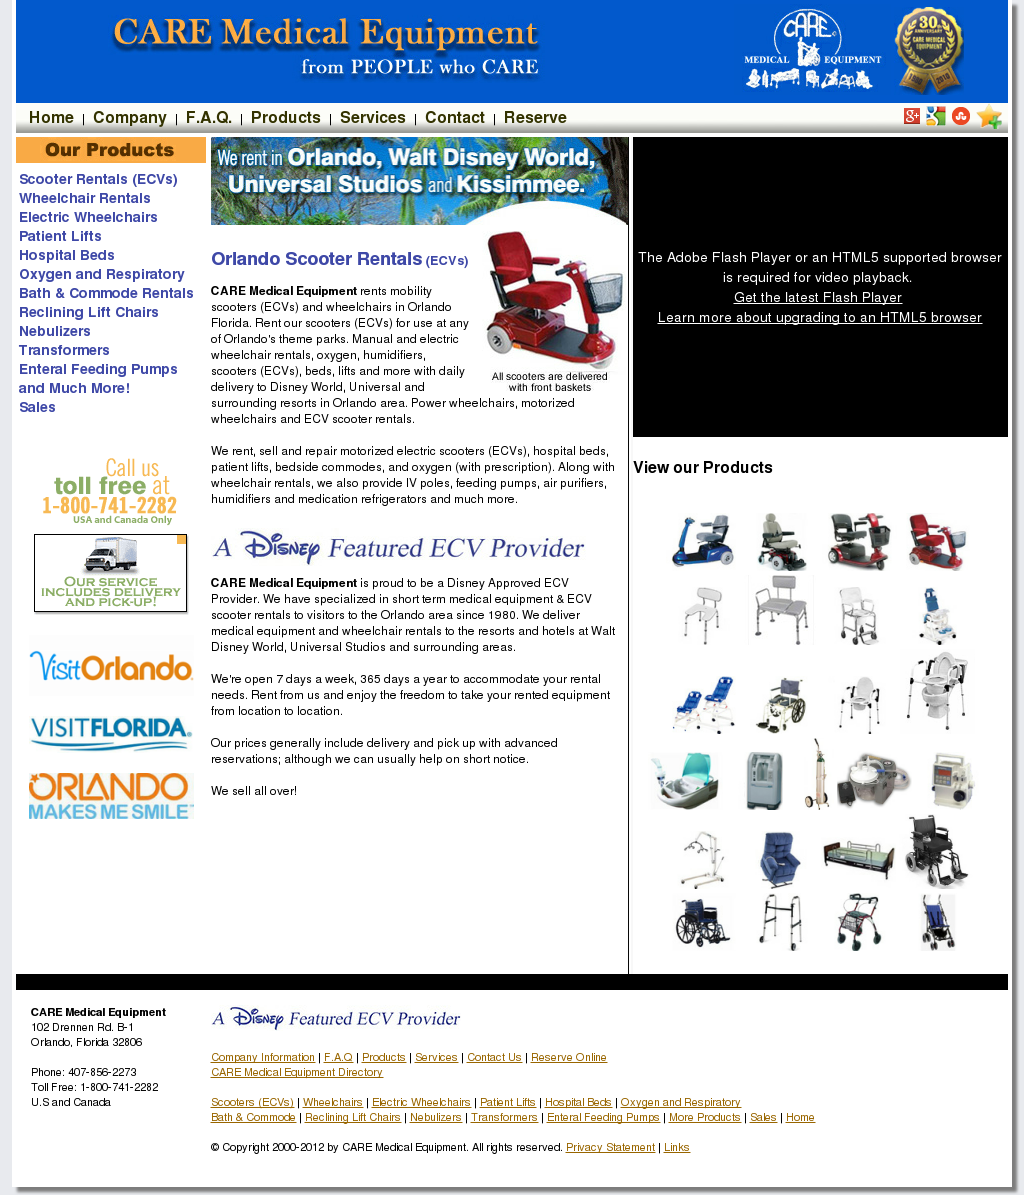 Caremedicalequipment Competitors, Revenue and Employees